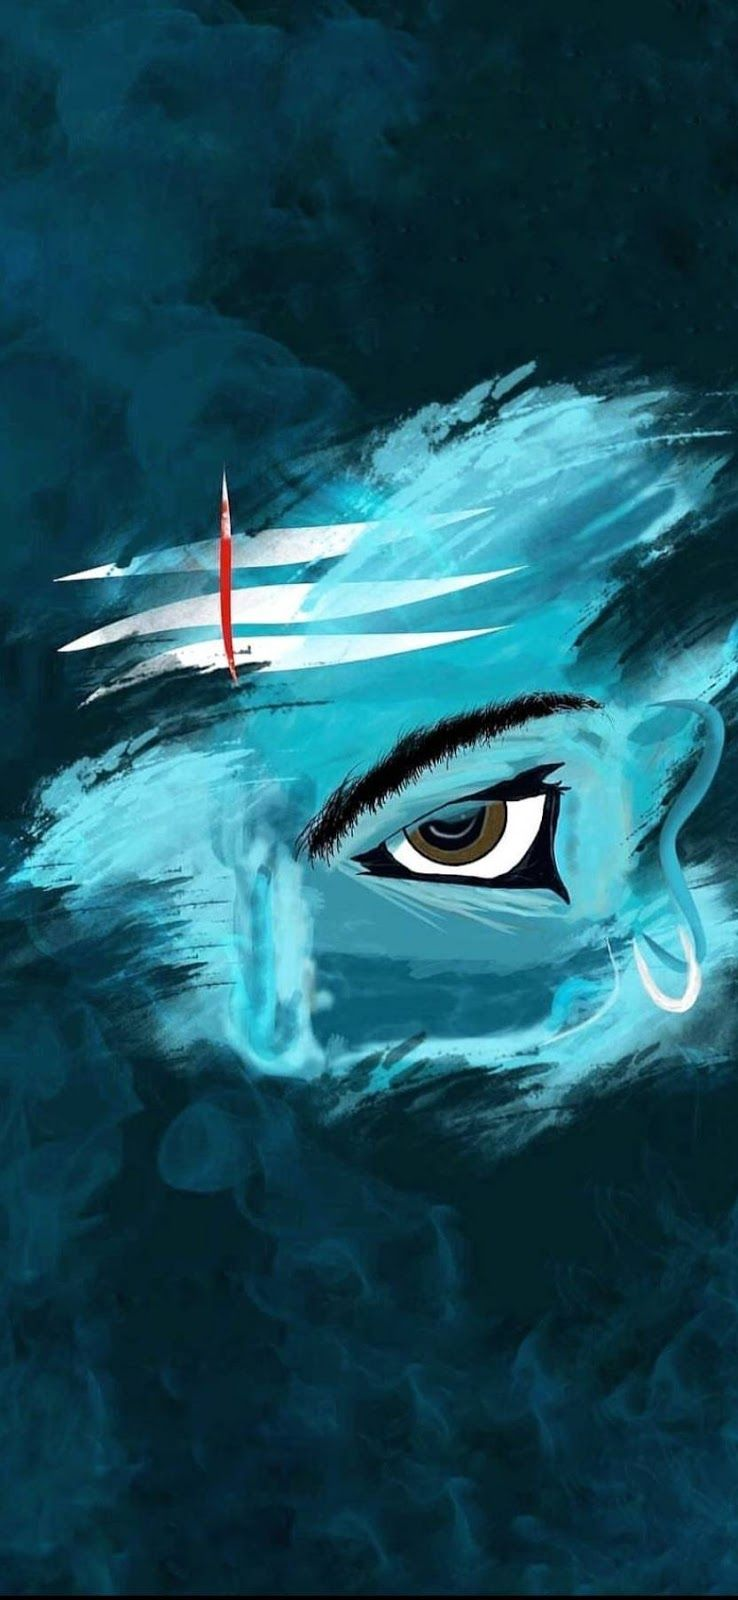 Most Unique And Ultra Hd Shiva Wallpapers Hindu God Mahadev Full Hd Wallpaper For Mobile Screen Mahakaal Wallpapers In 2020 Lord Shiva Hd Wallpaper Shiva Wallpaper Lord Shiva Hd Images